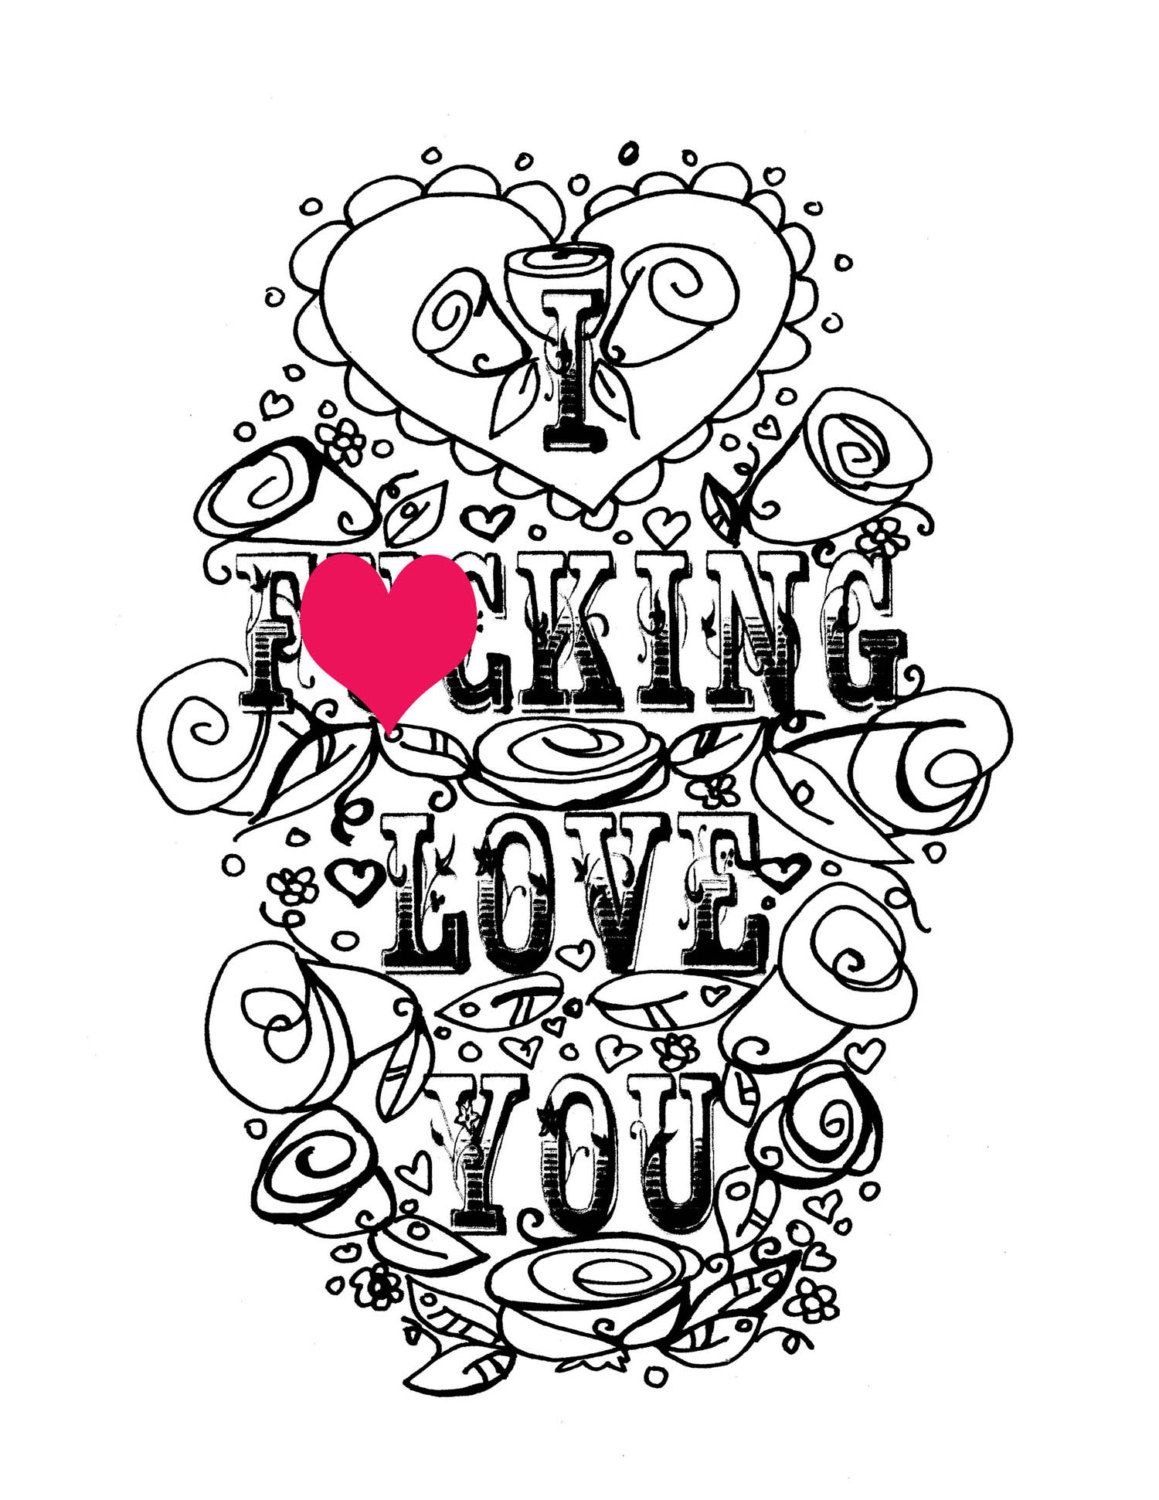 1159x1500 Inspiring Coloring Sheetlove You Stinky Face Love Pict